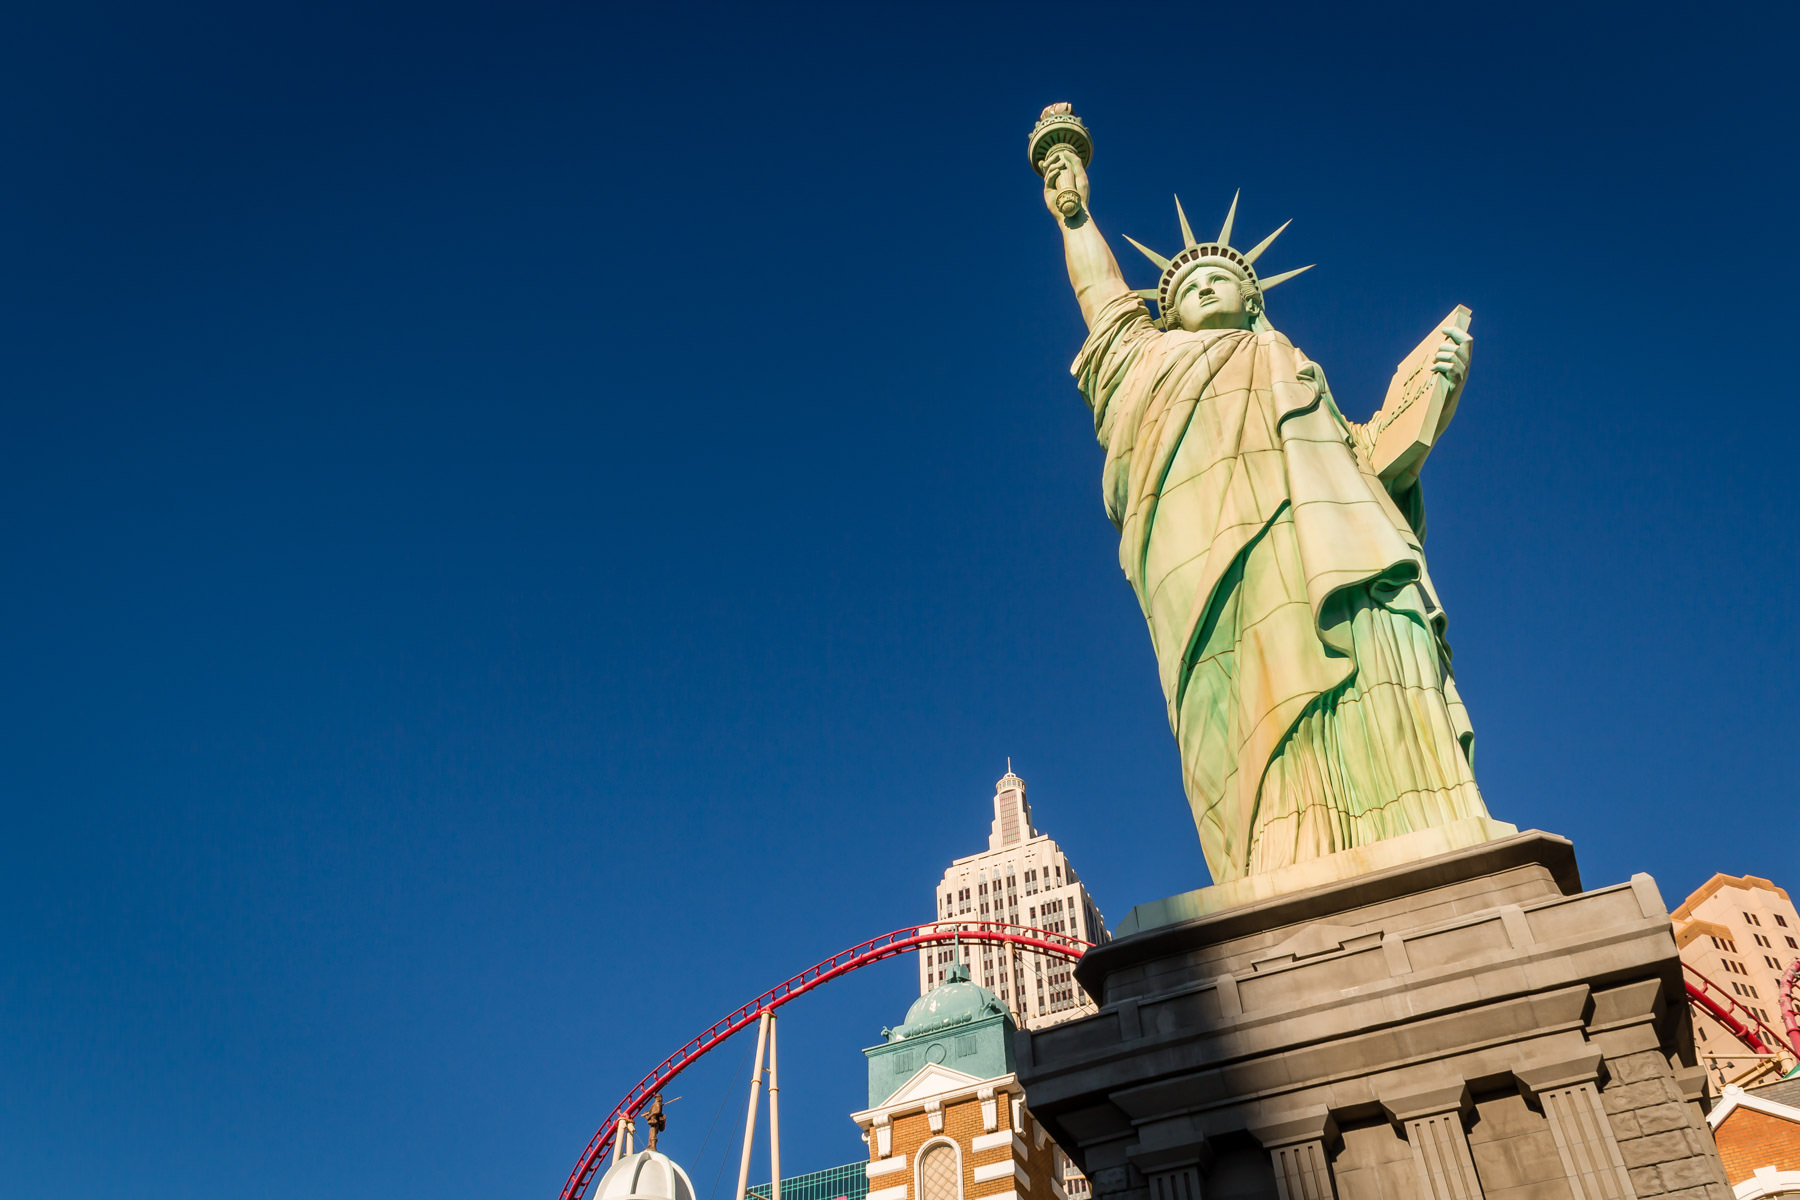 This replica Statue of Liberty rises over Las Vegas' New York New York Hotel & Casino.